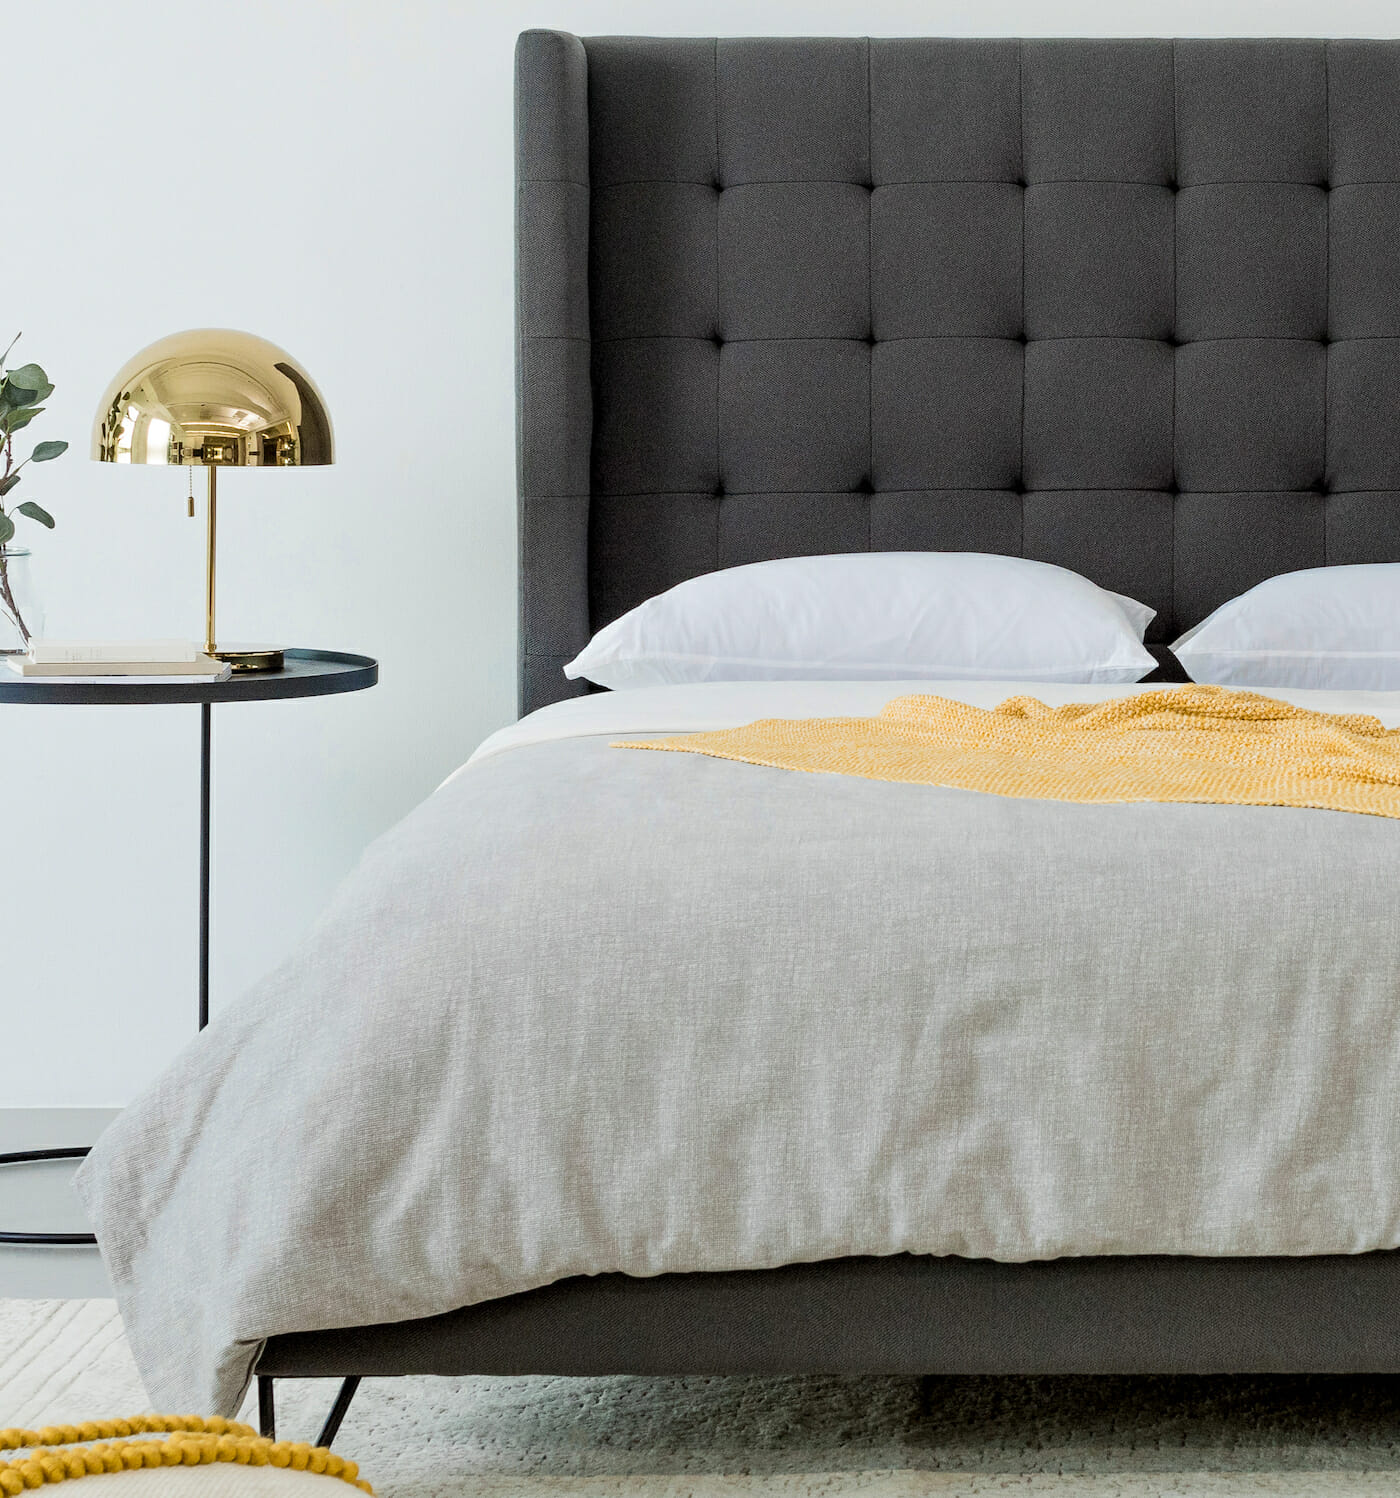 The Noa Venice bed - Charcoal